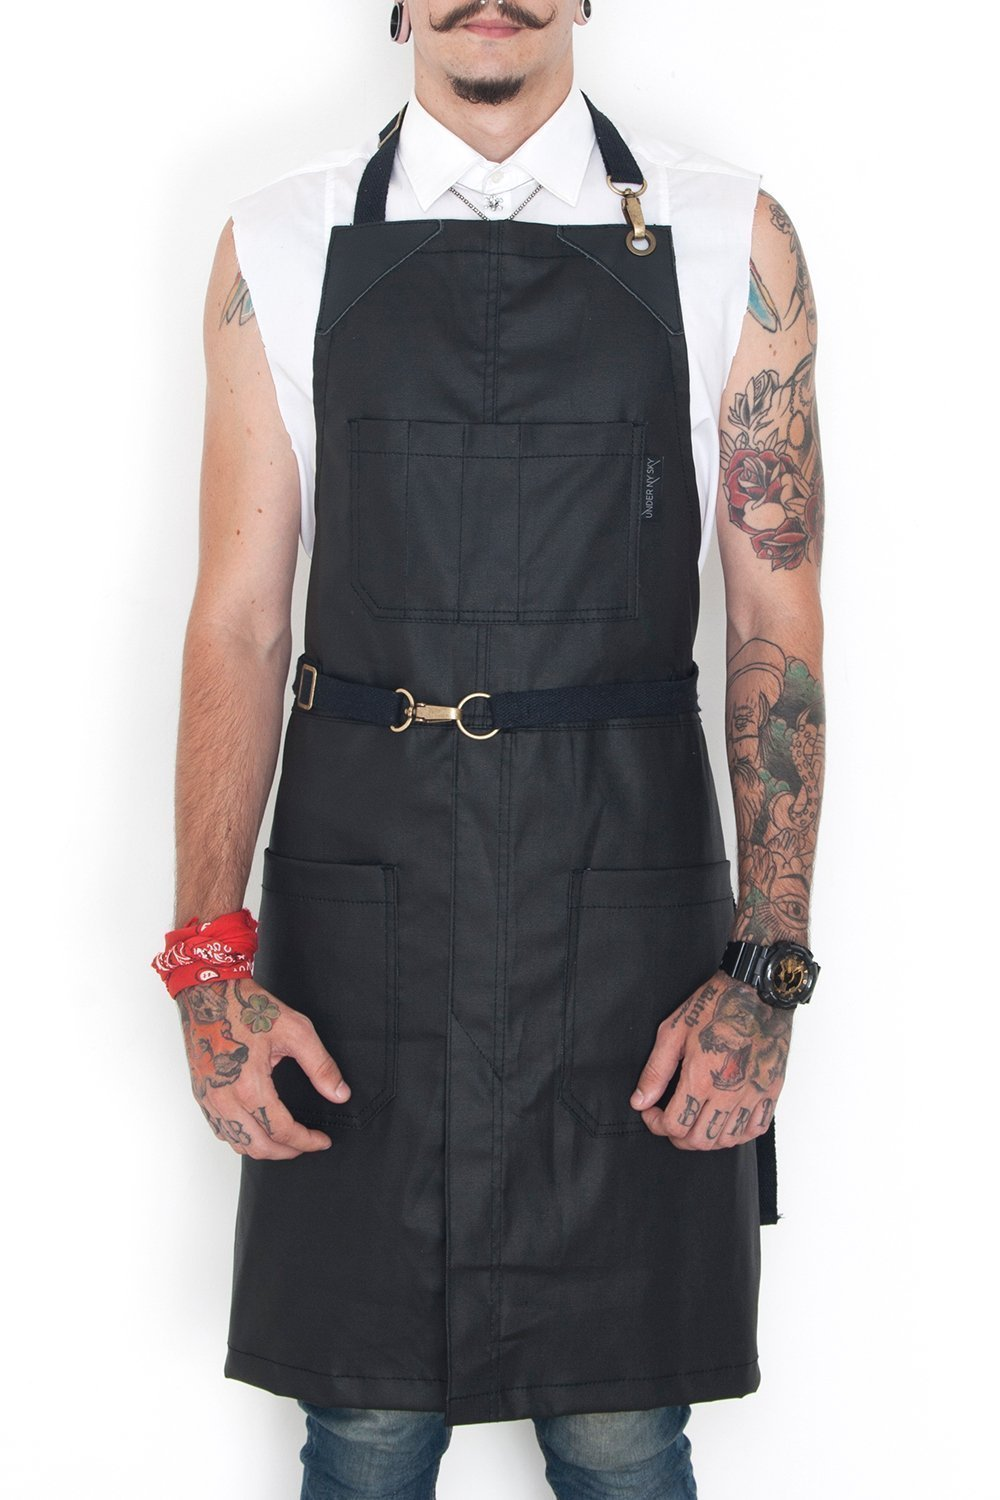 No-Tie Apron - Coated Void Black Denim - Black Leather - Split-Leg by Under NY Sky